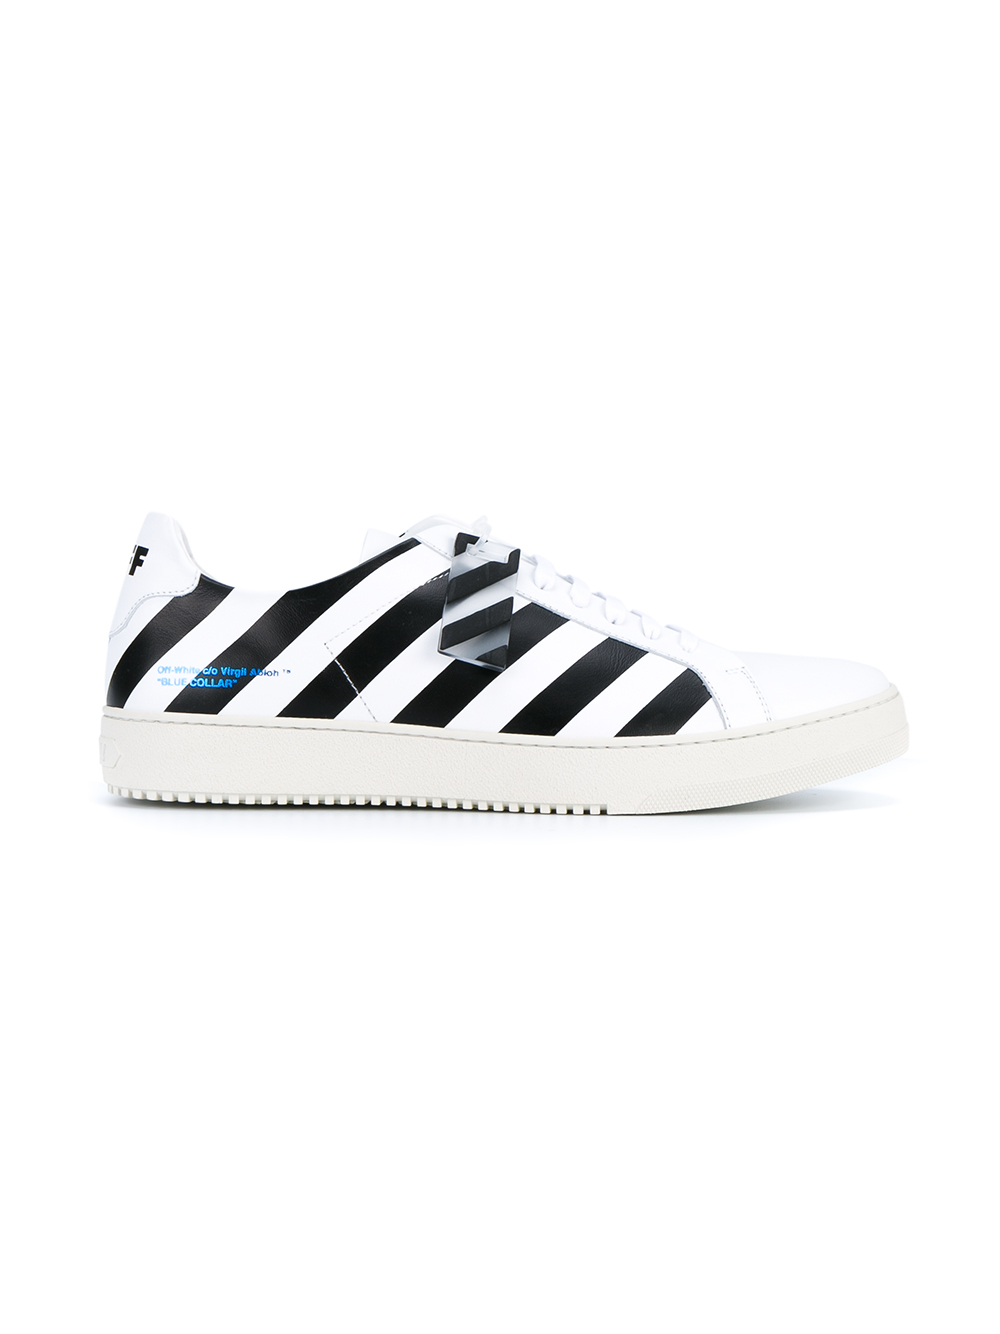 Lyst - Off-White c o Virgil Abloh Striped Leather Sneakers in White ... 60cfa4dcc32f